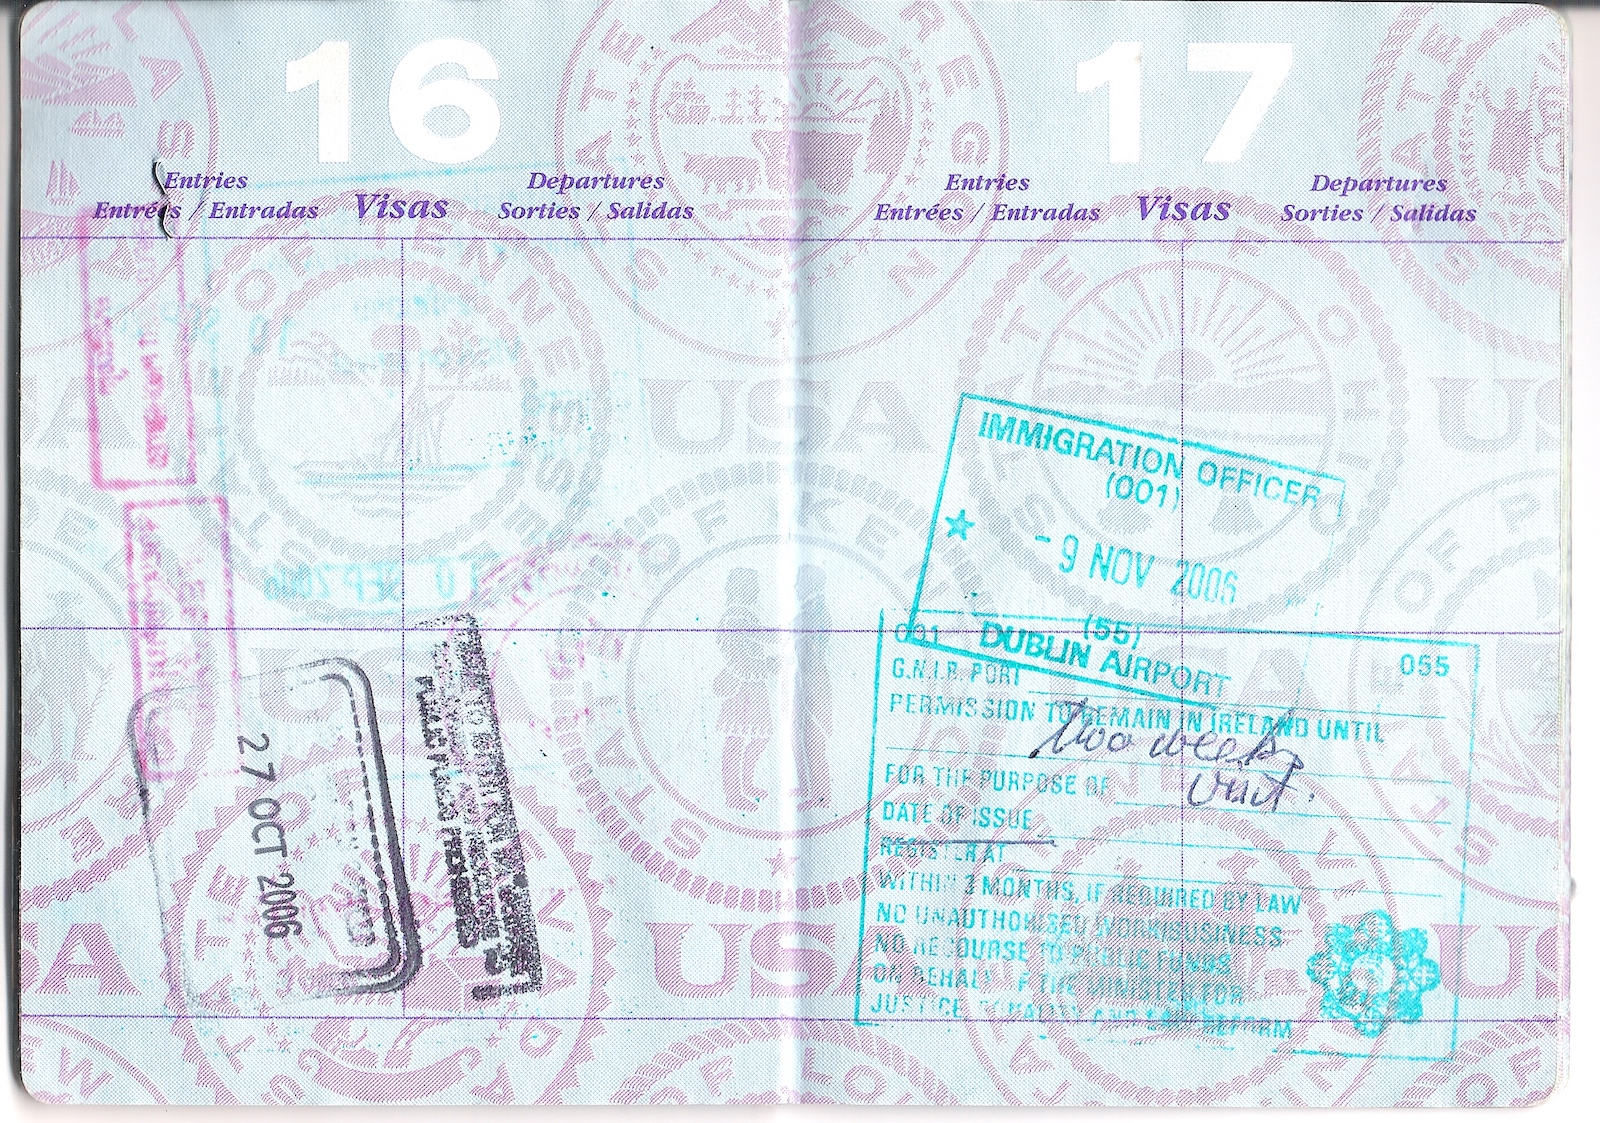 Passport visa for Ireland and the UK entry in Scotland